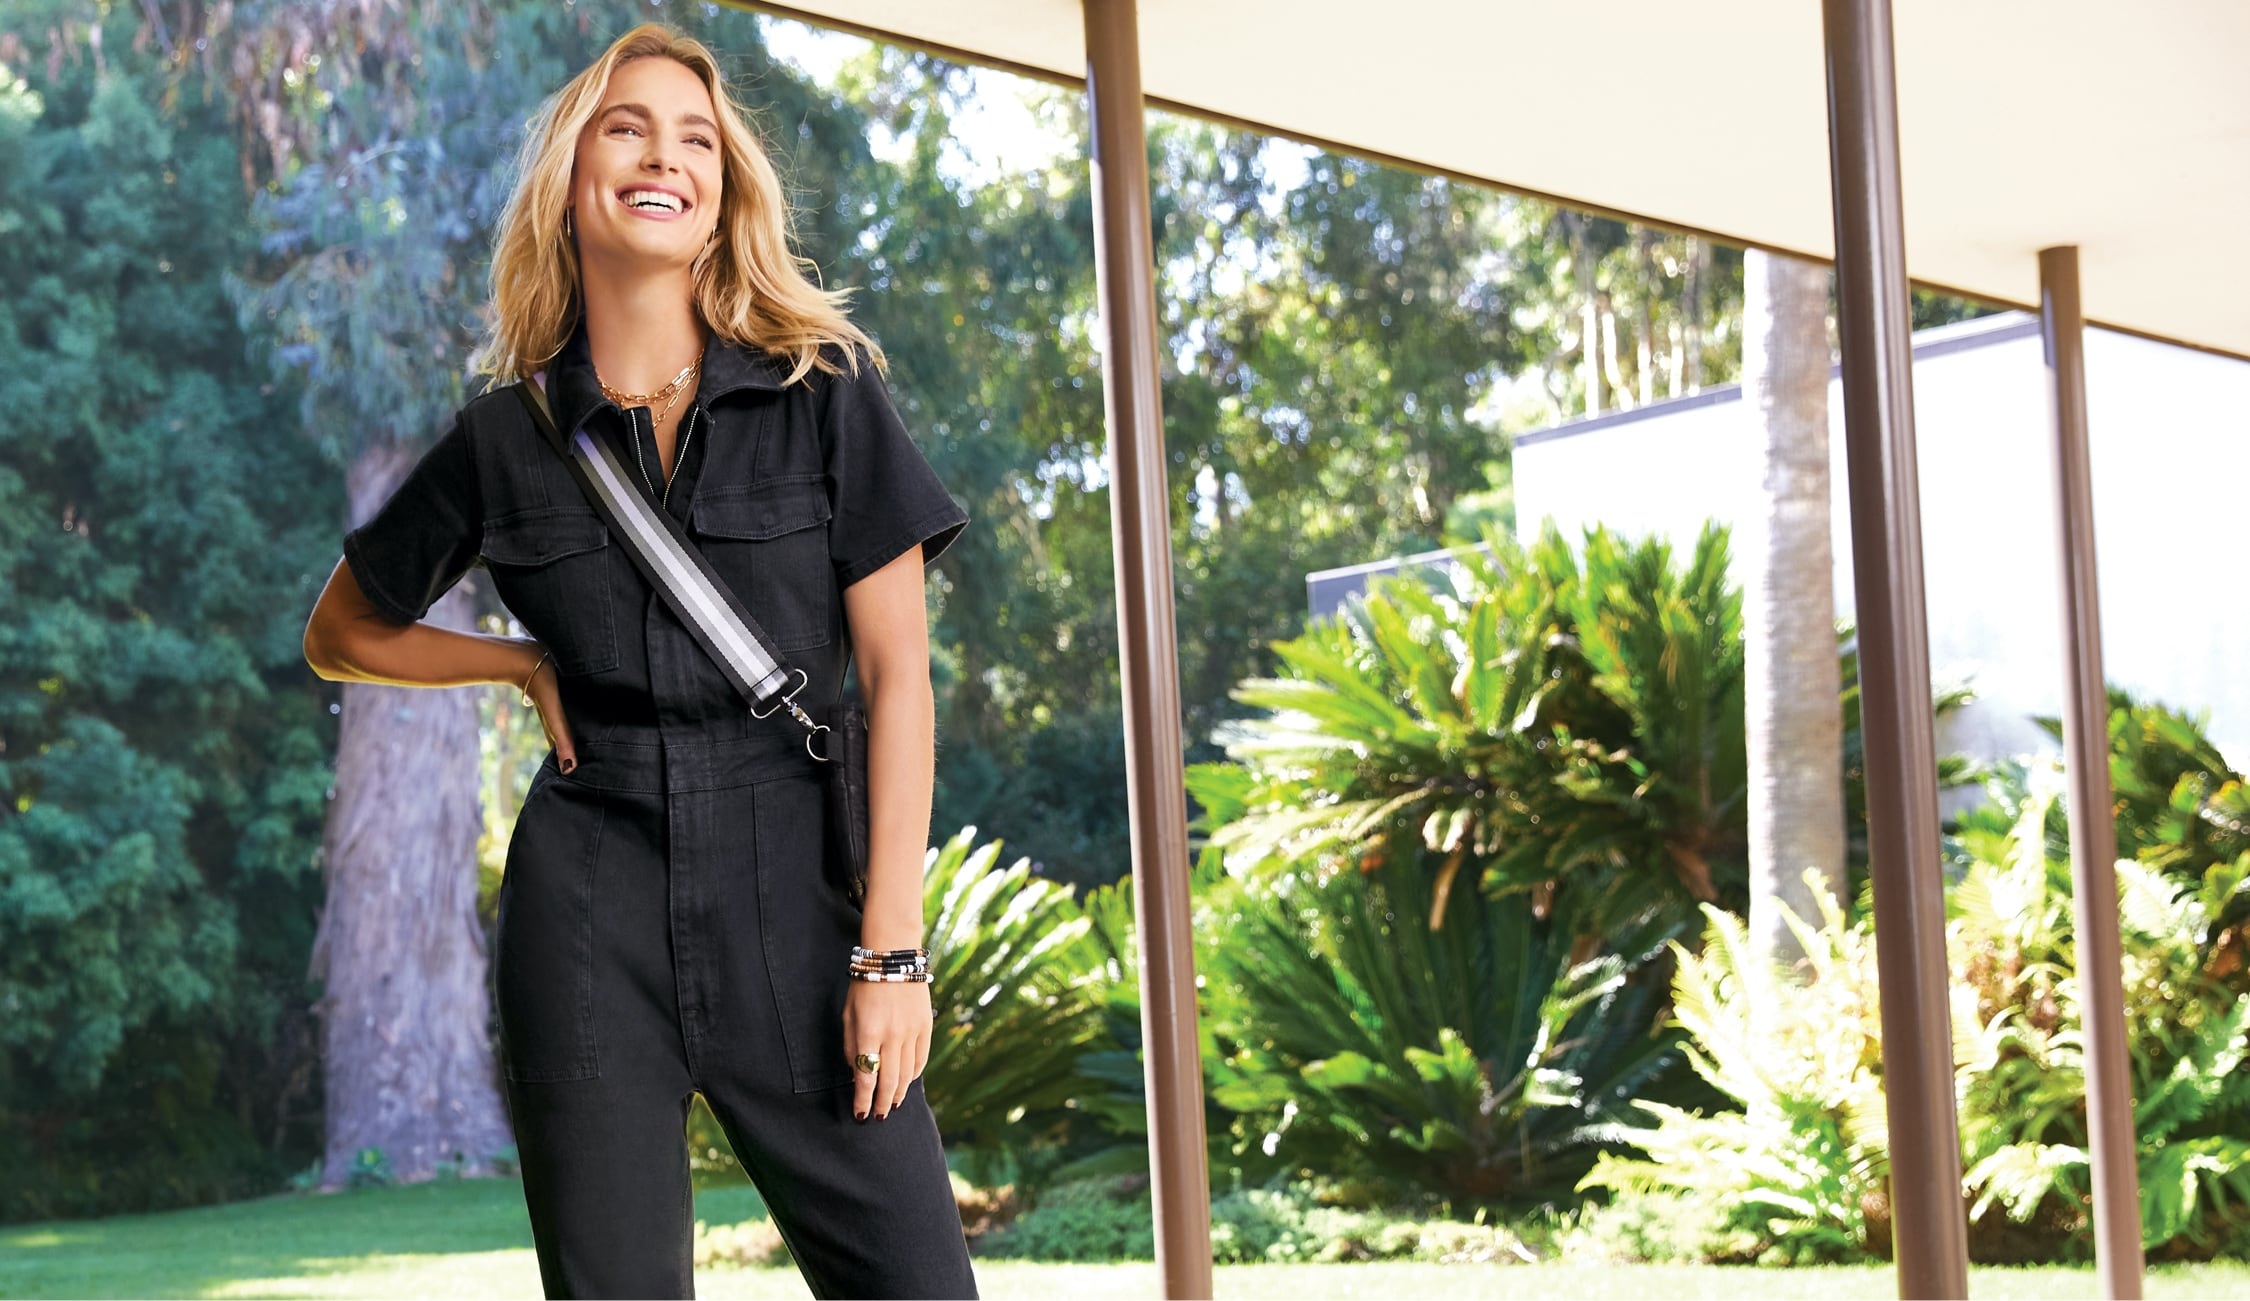 woman wearing a utility jumpsuit and smiling